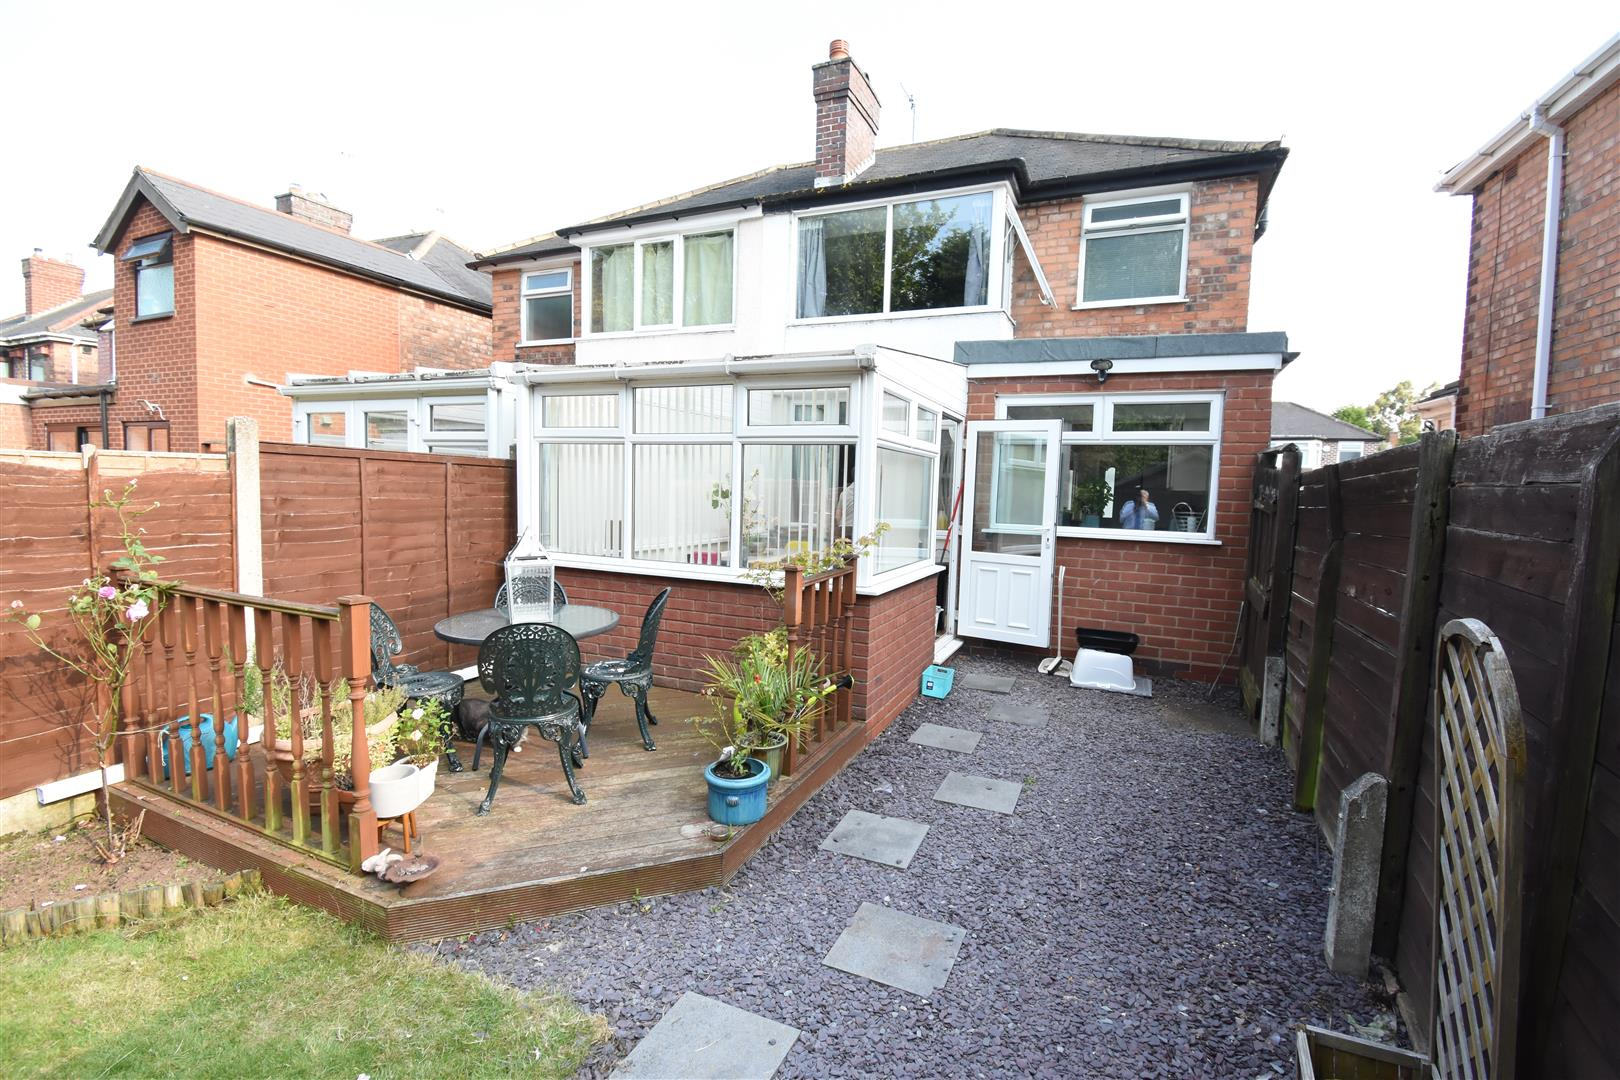 3 bed house for sale in Stow Grove, Castle Bromwich, Birmingham 14